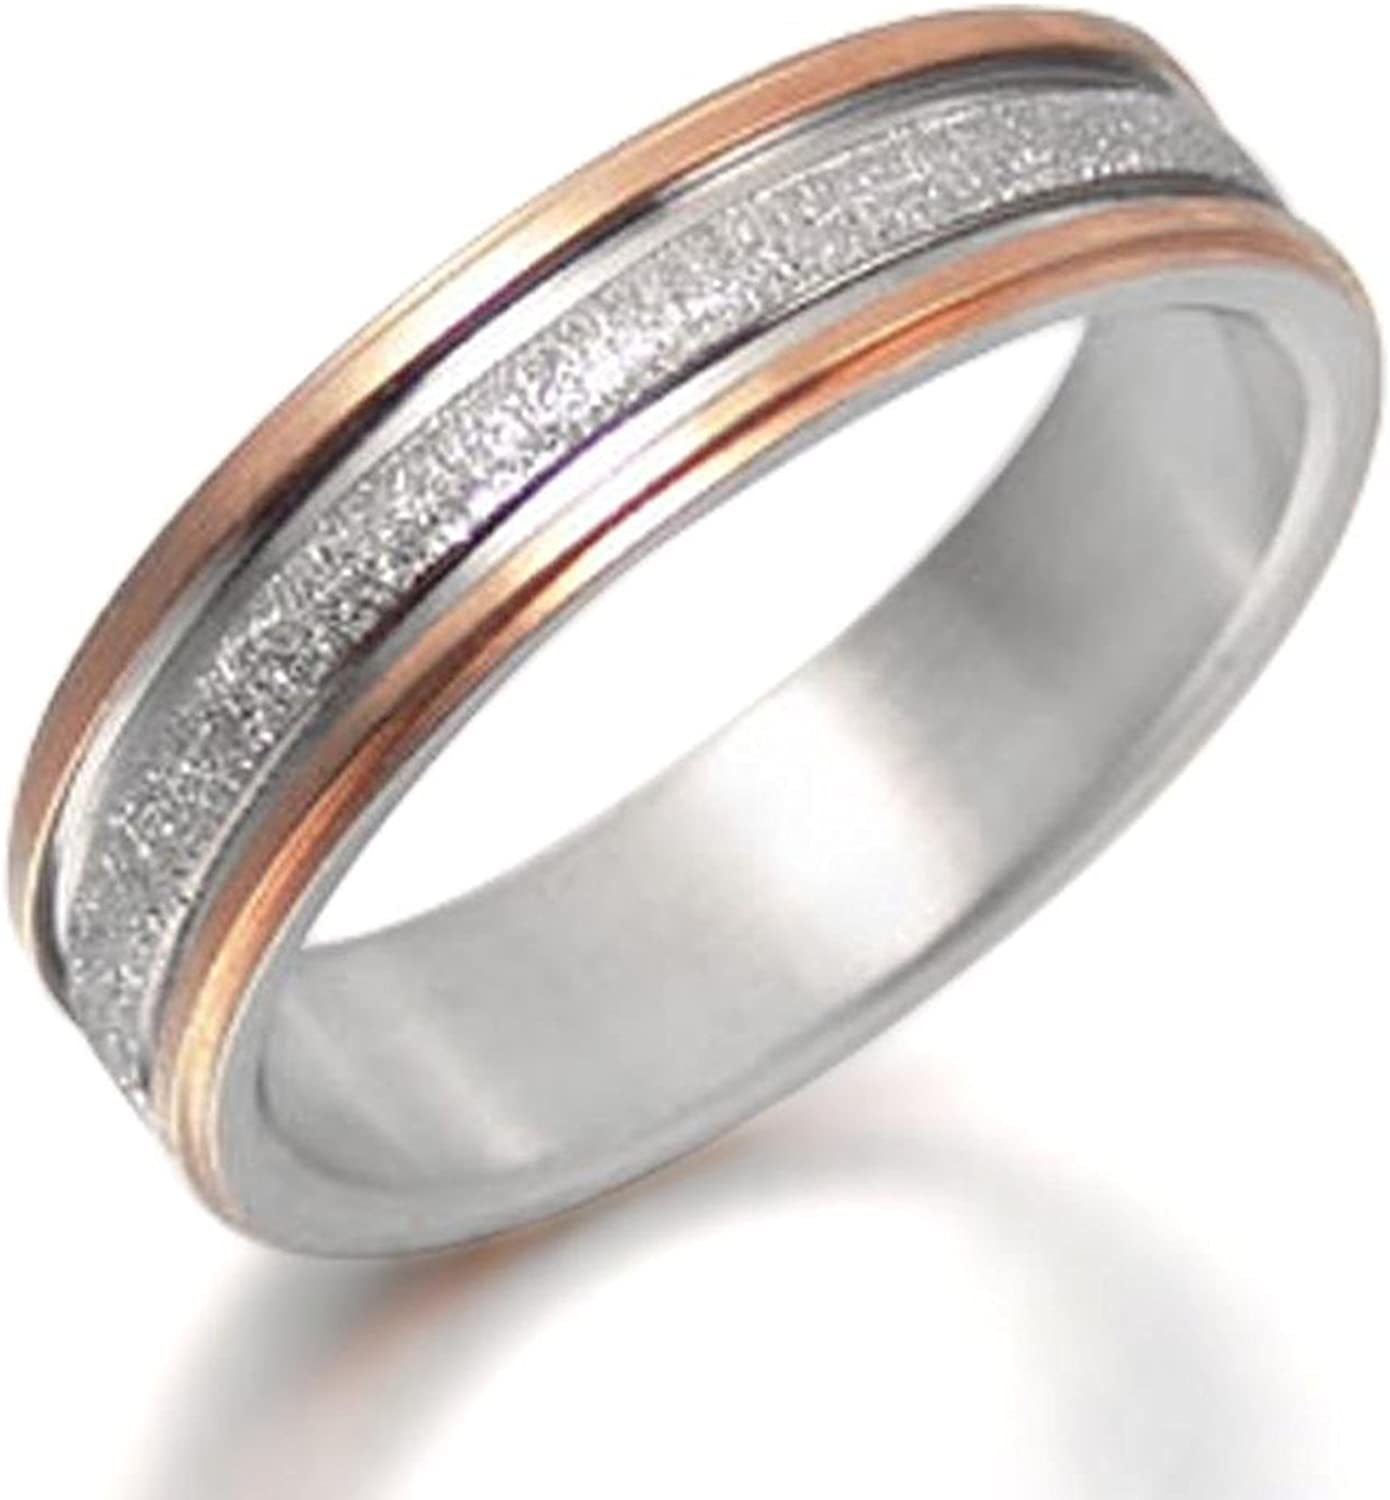 Gemini Groom /& Bride Two Tone Black /& Silver Matt /& Polish Wedding Bands Matching Titanium Rings Set 6mm /& 4mm Width Men Ring Size 4 7 Women Ring Size